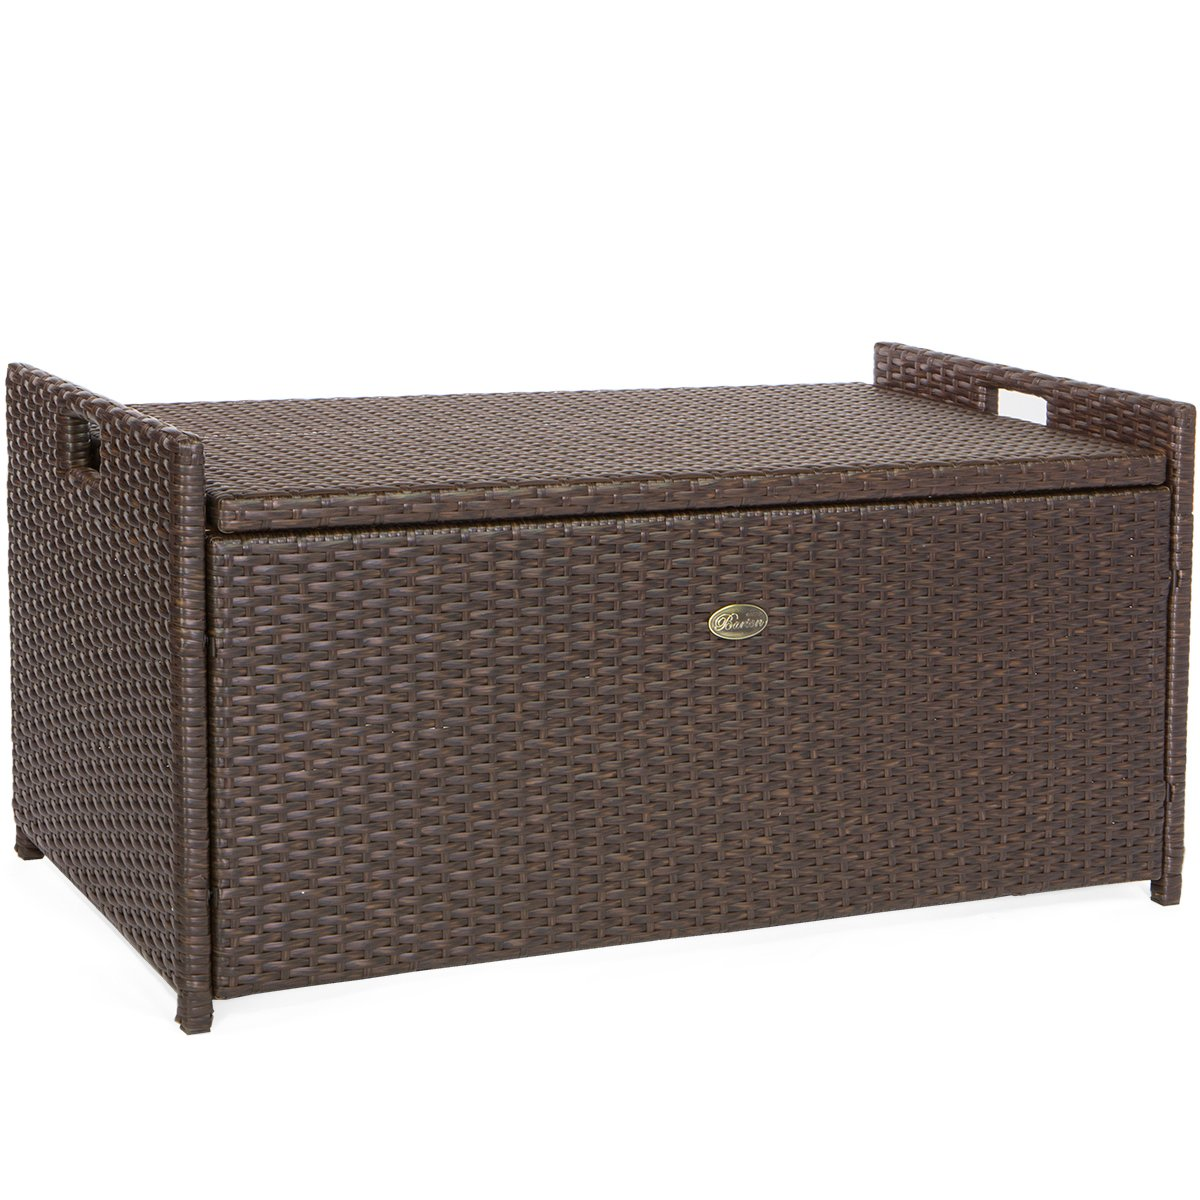 Barton Outdoor Storage Bench Rattan Style Deck Box w/ Cushion, 60-Gallon